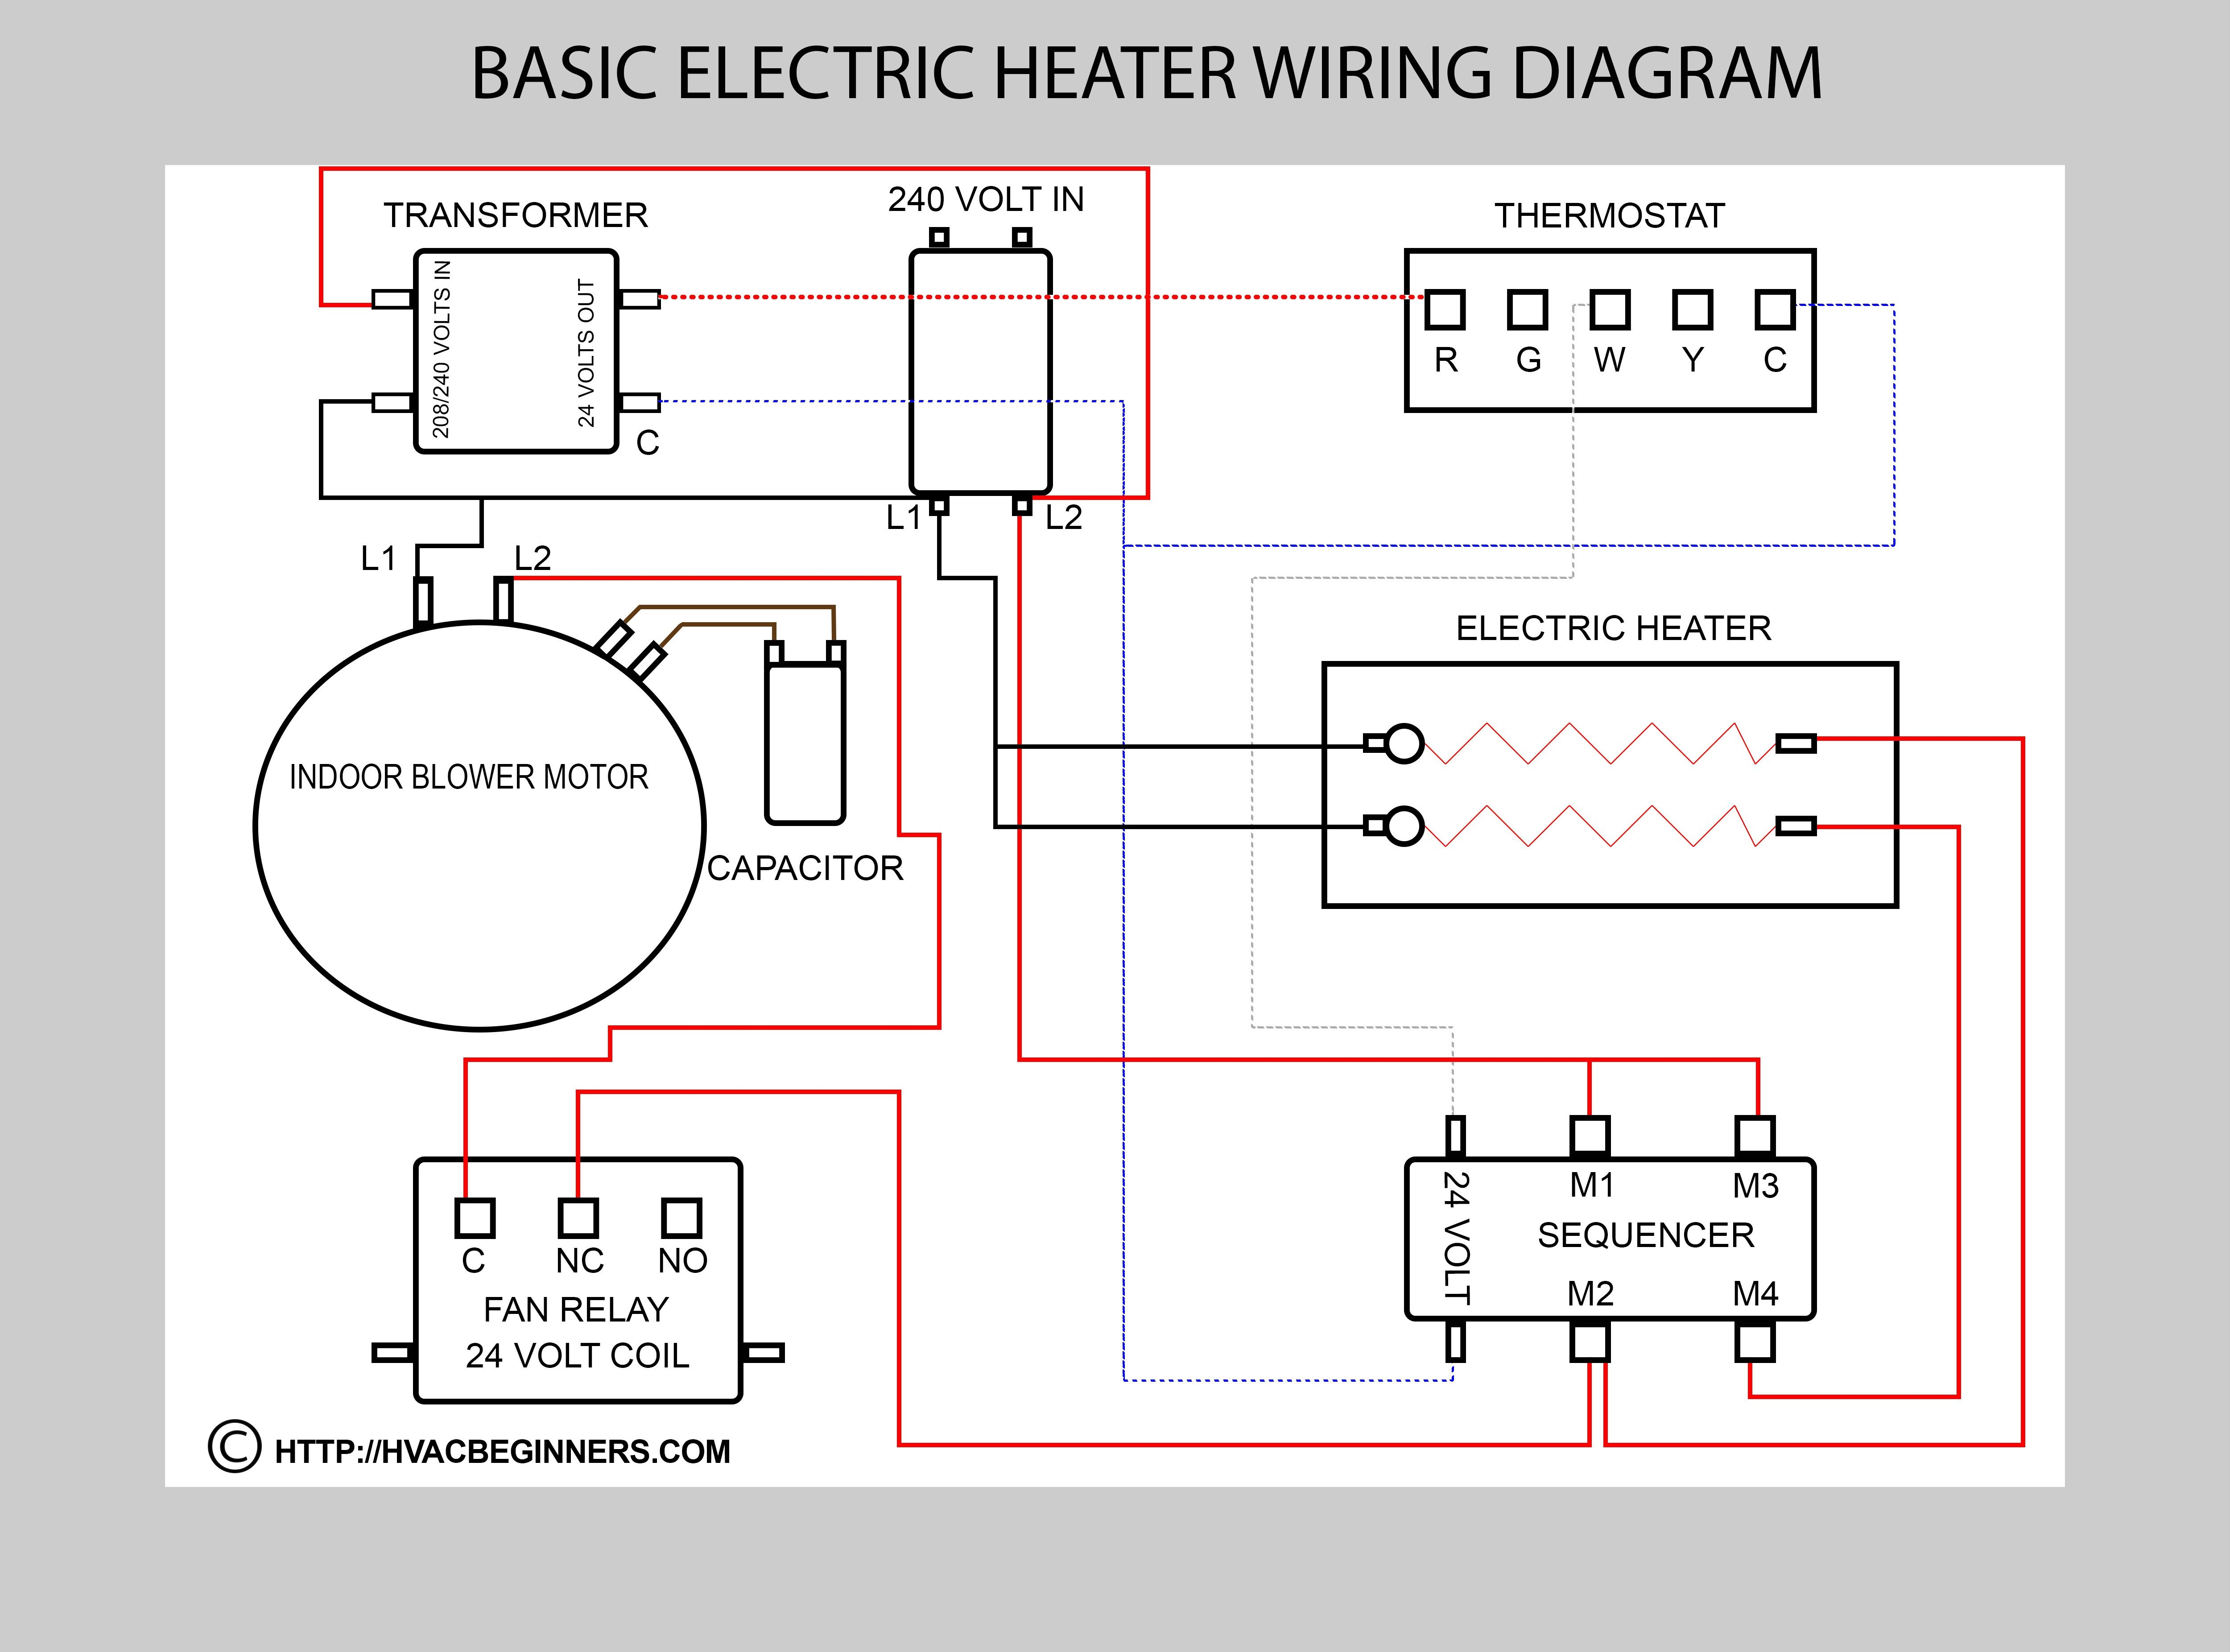 House Thermostat Fan Relay Wiring Diagrams Block And Schematic Lasko Fan  Motor Wiring Diagram Lasko Fan Motor Wiring Diagram Schematic